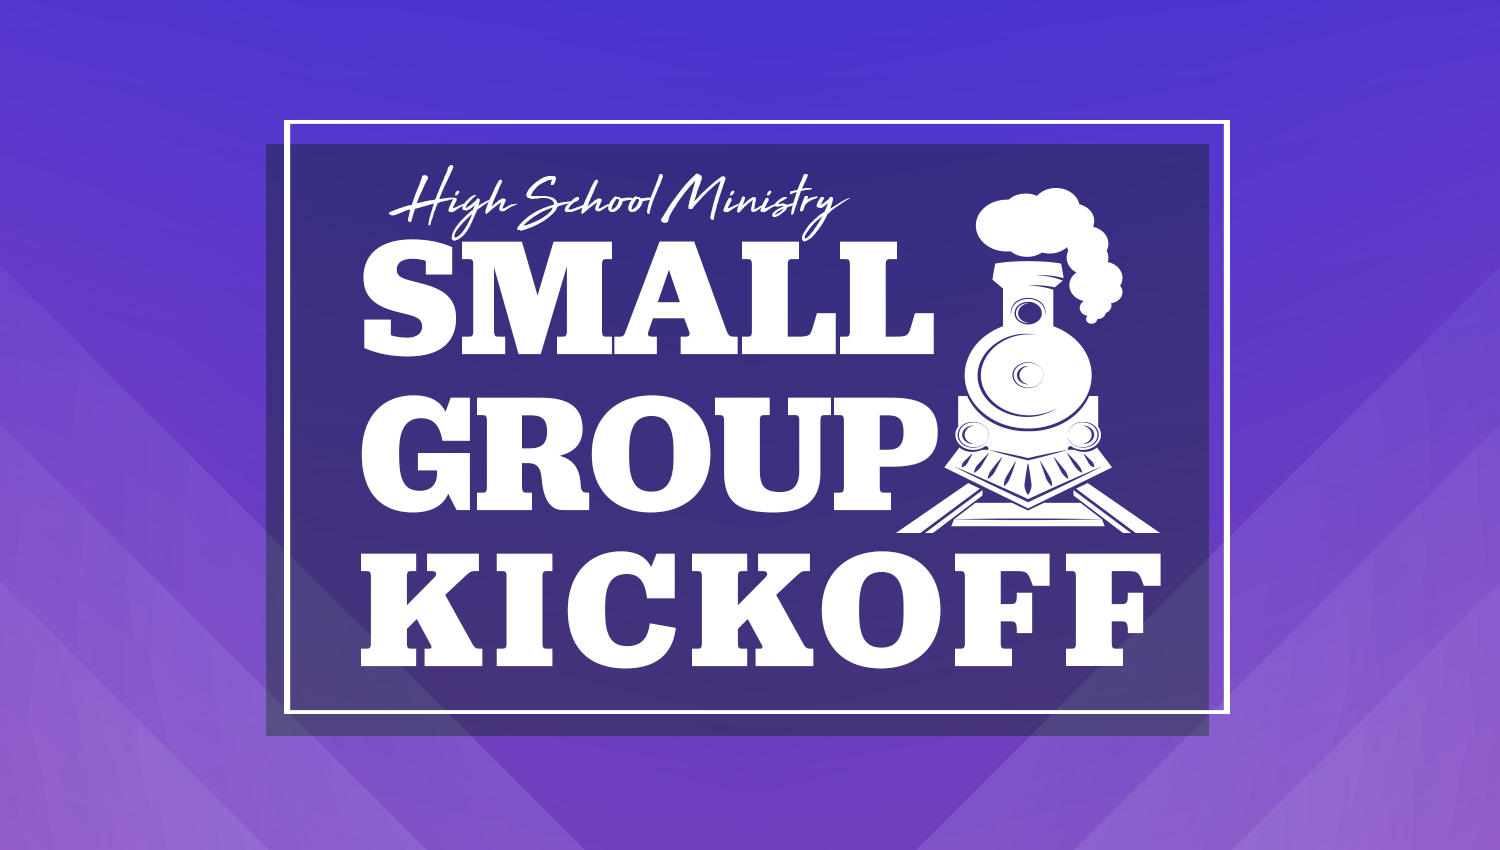 Small Group Kickoff